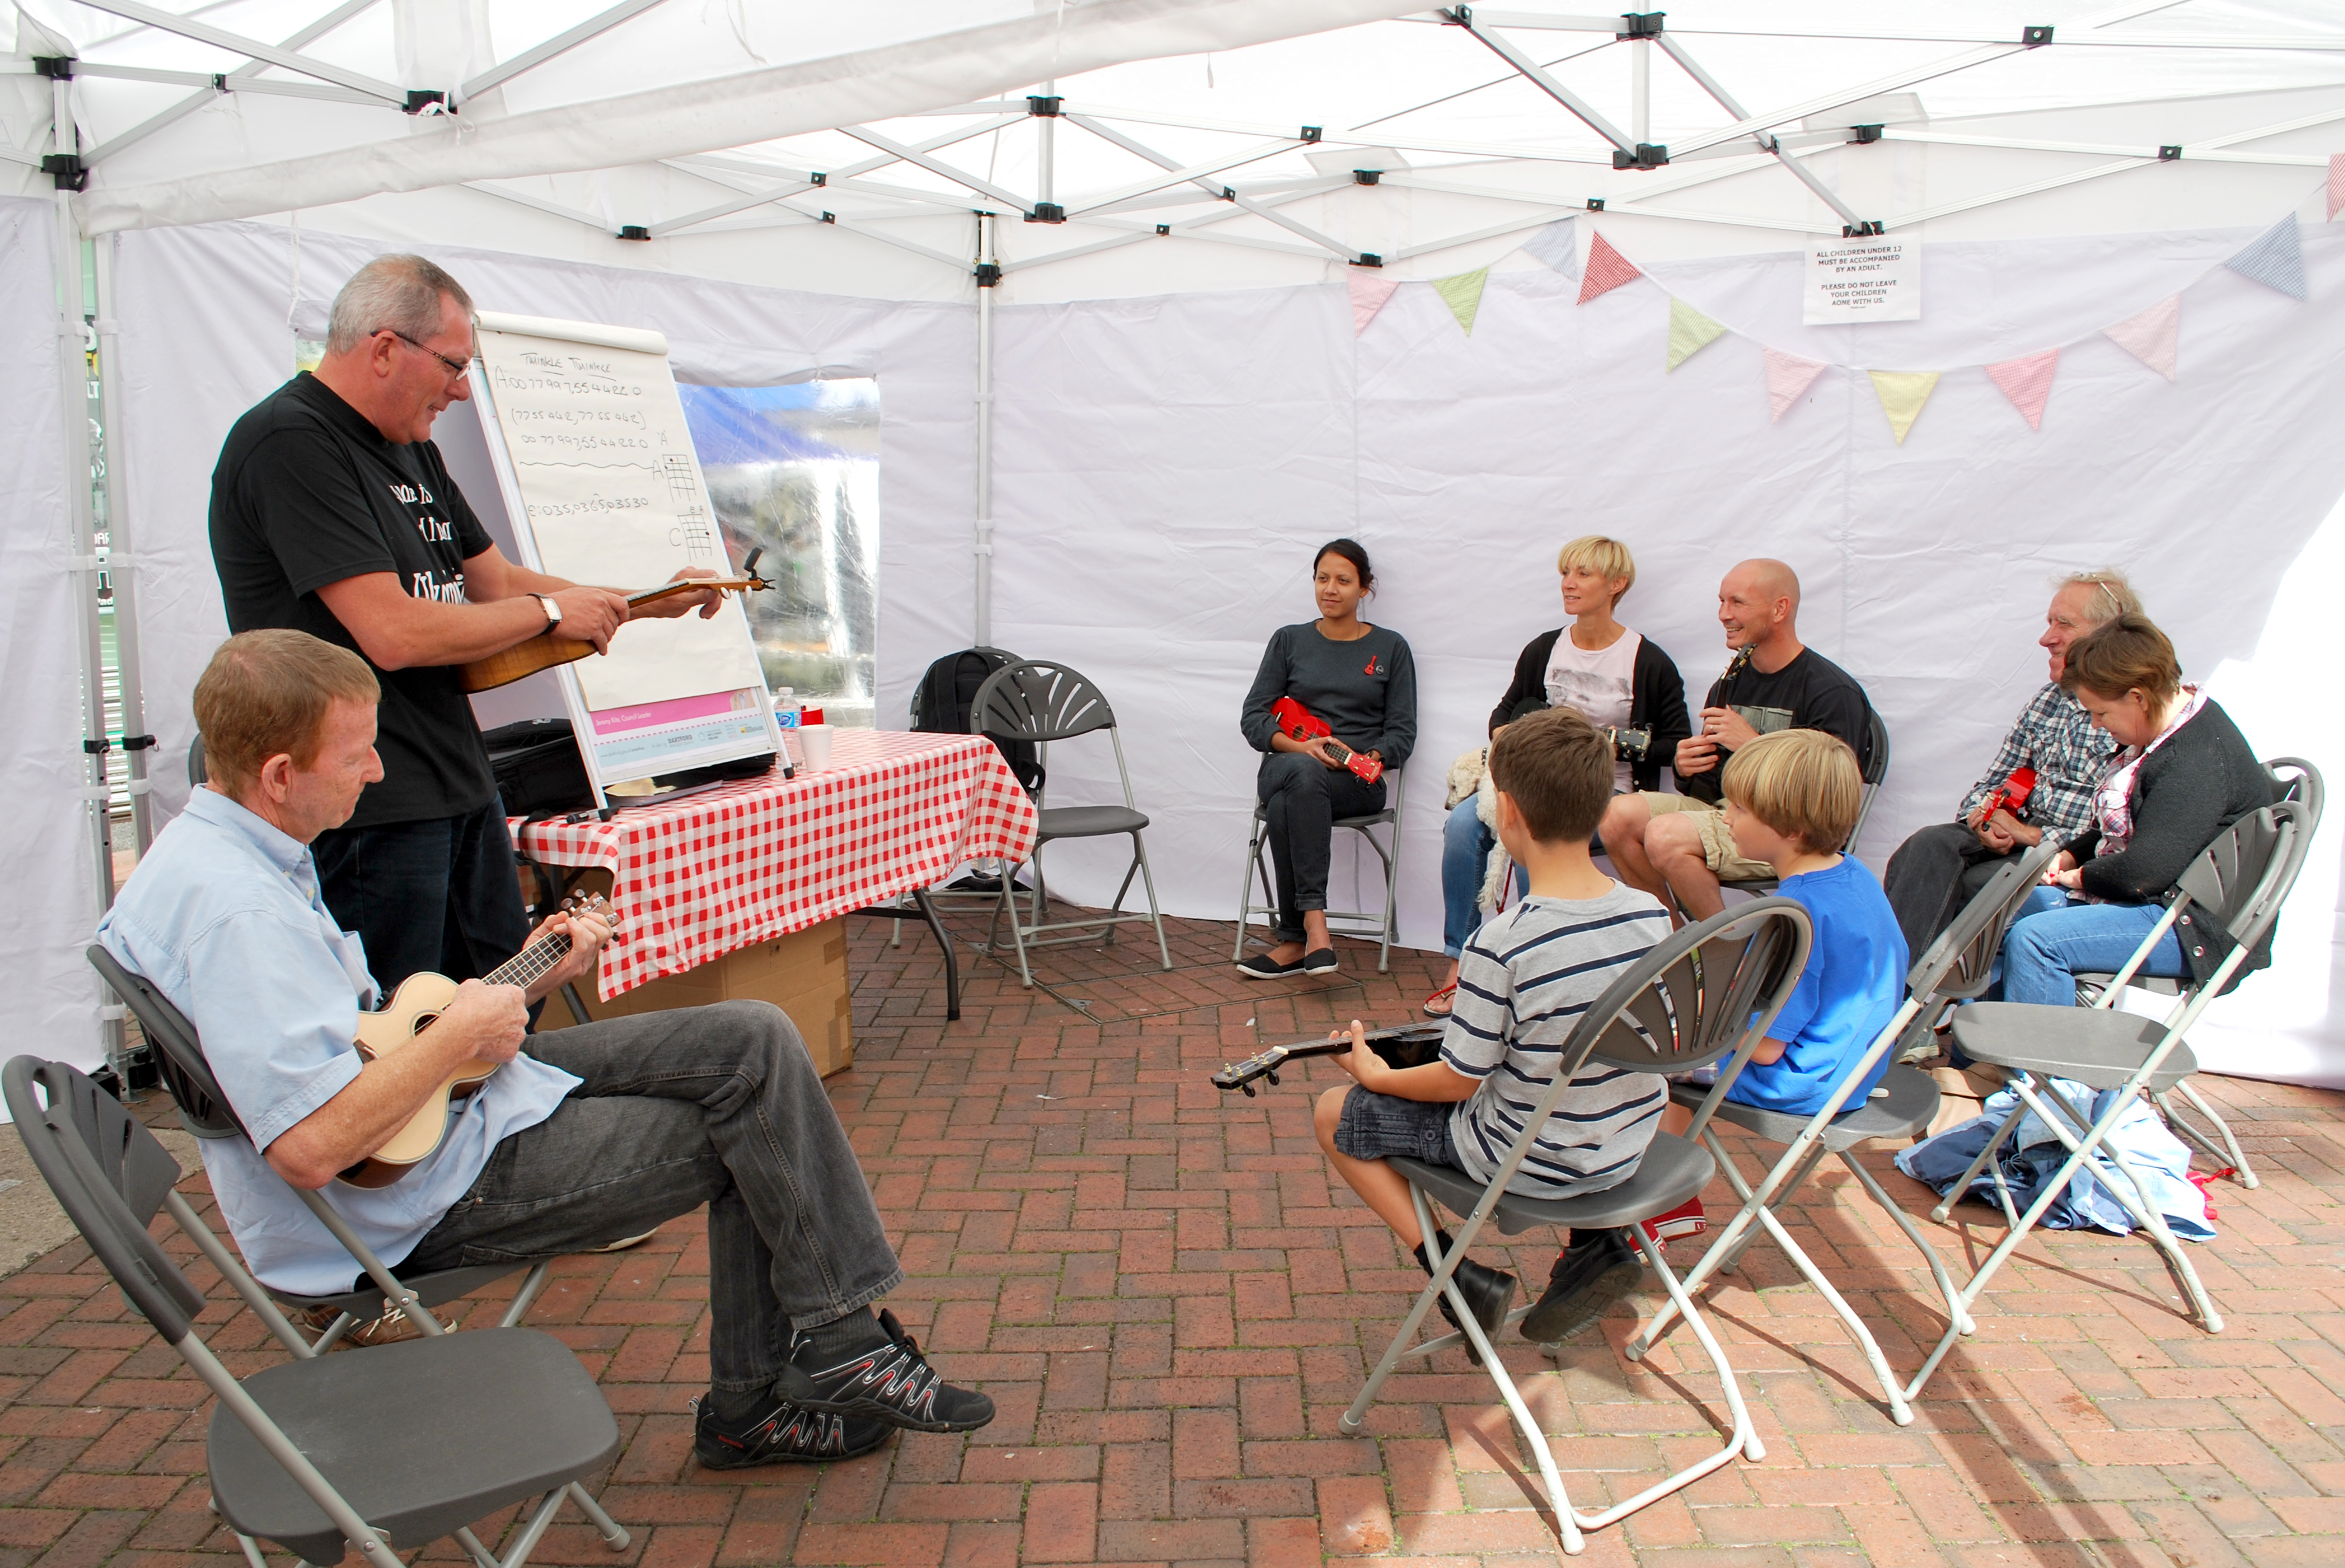 Steve Ball inspiring local residents with his Ukelele renditions of Guns N Roses